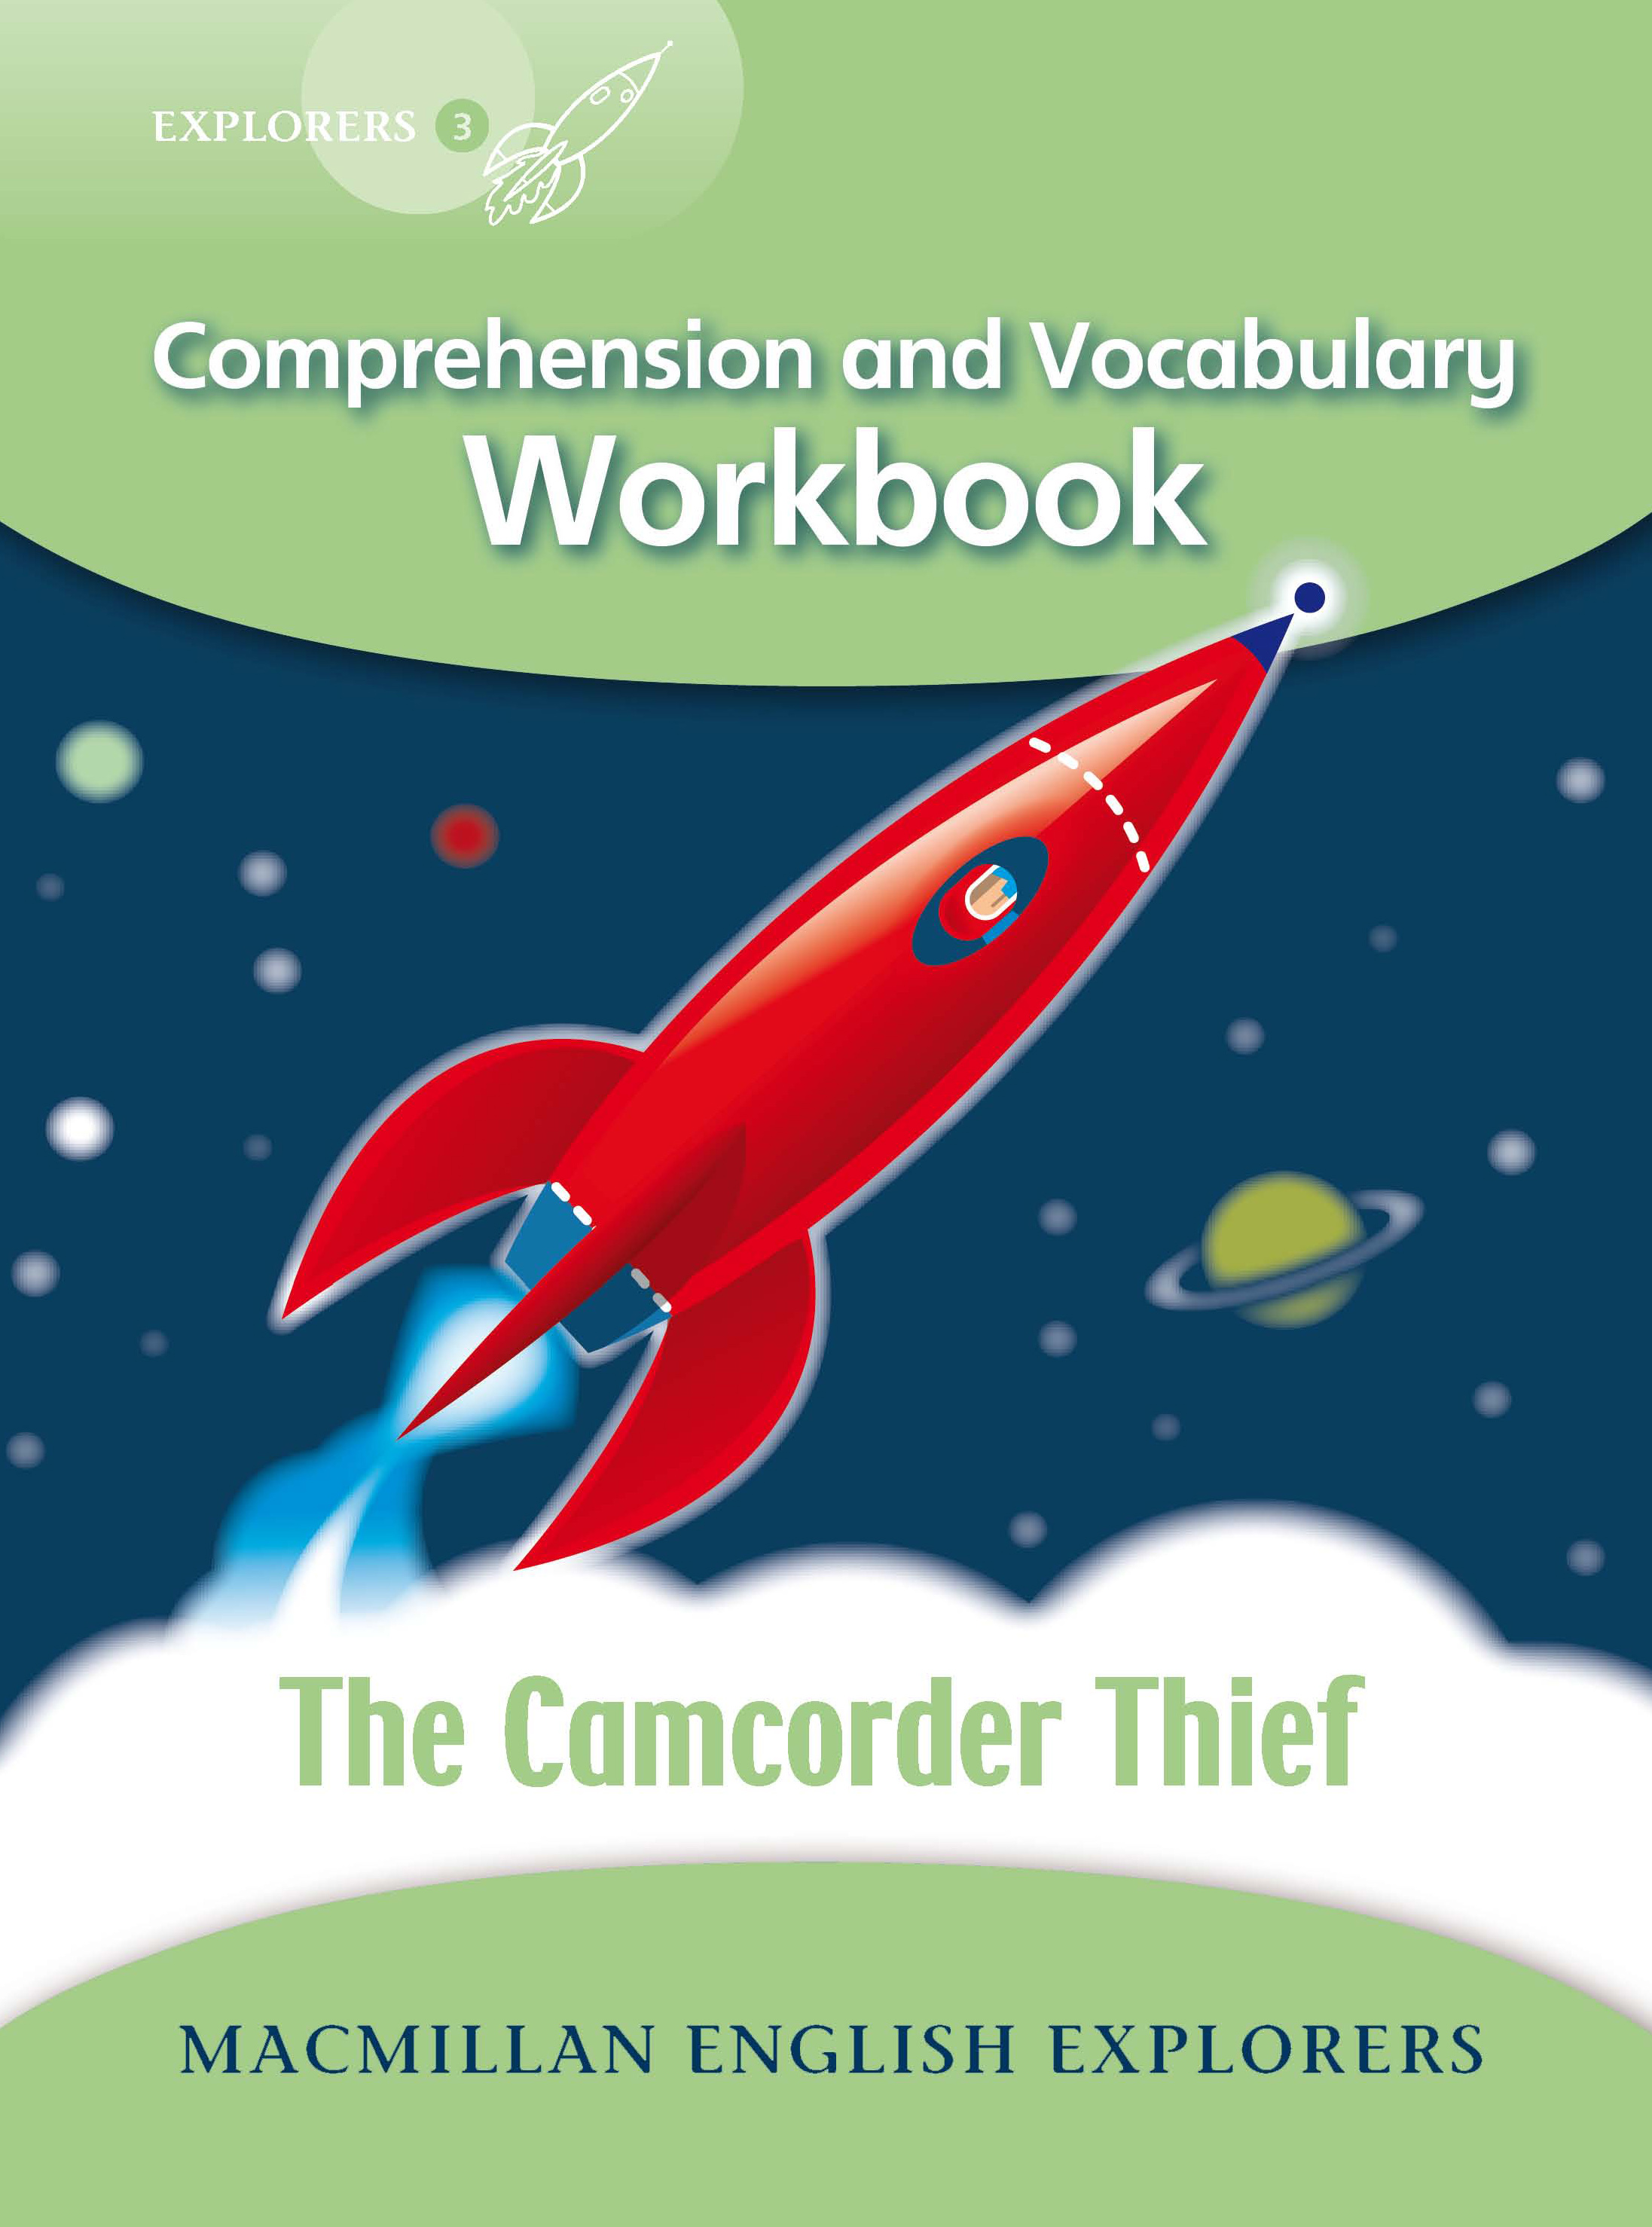 Explorers 3: The Camcorder Thief Workbook